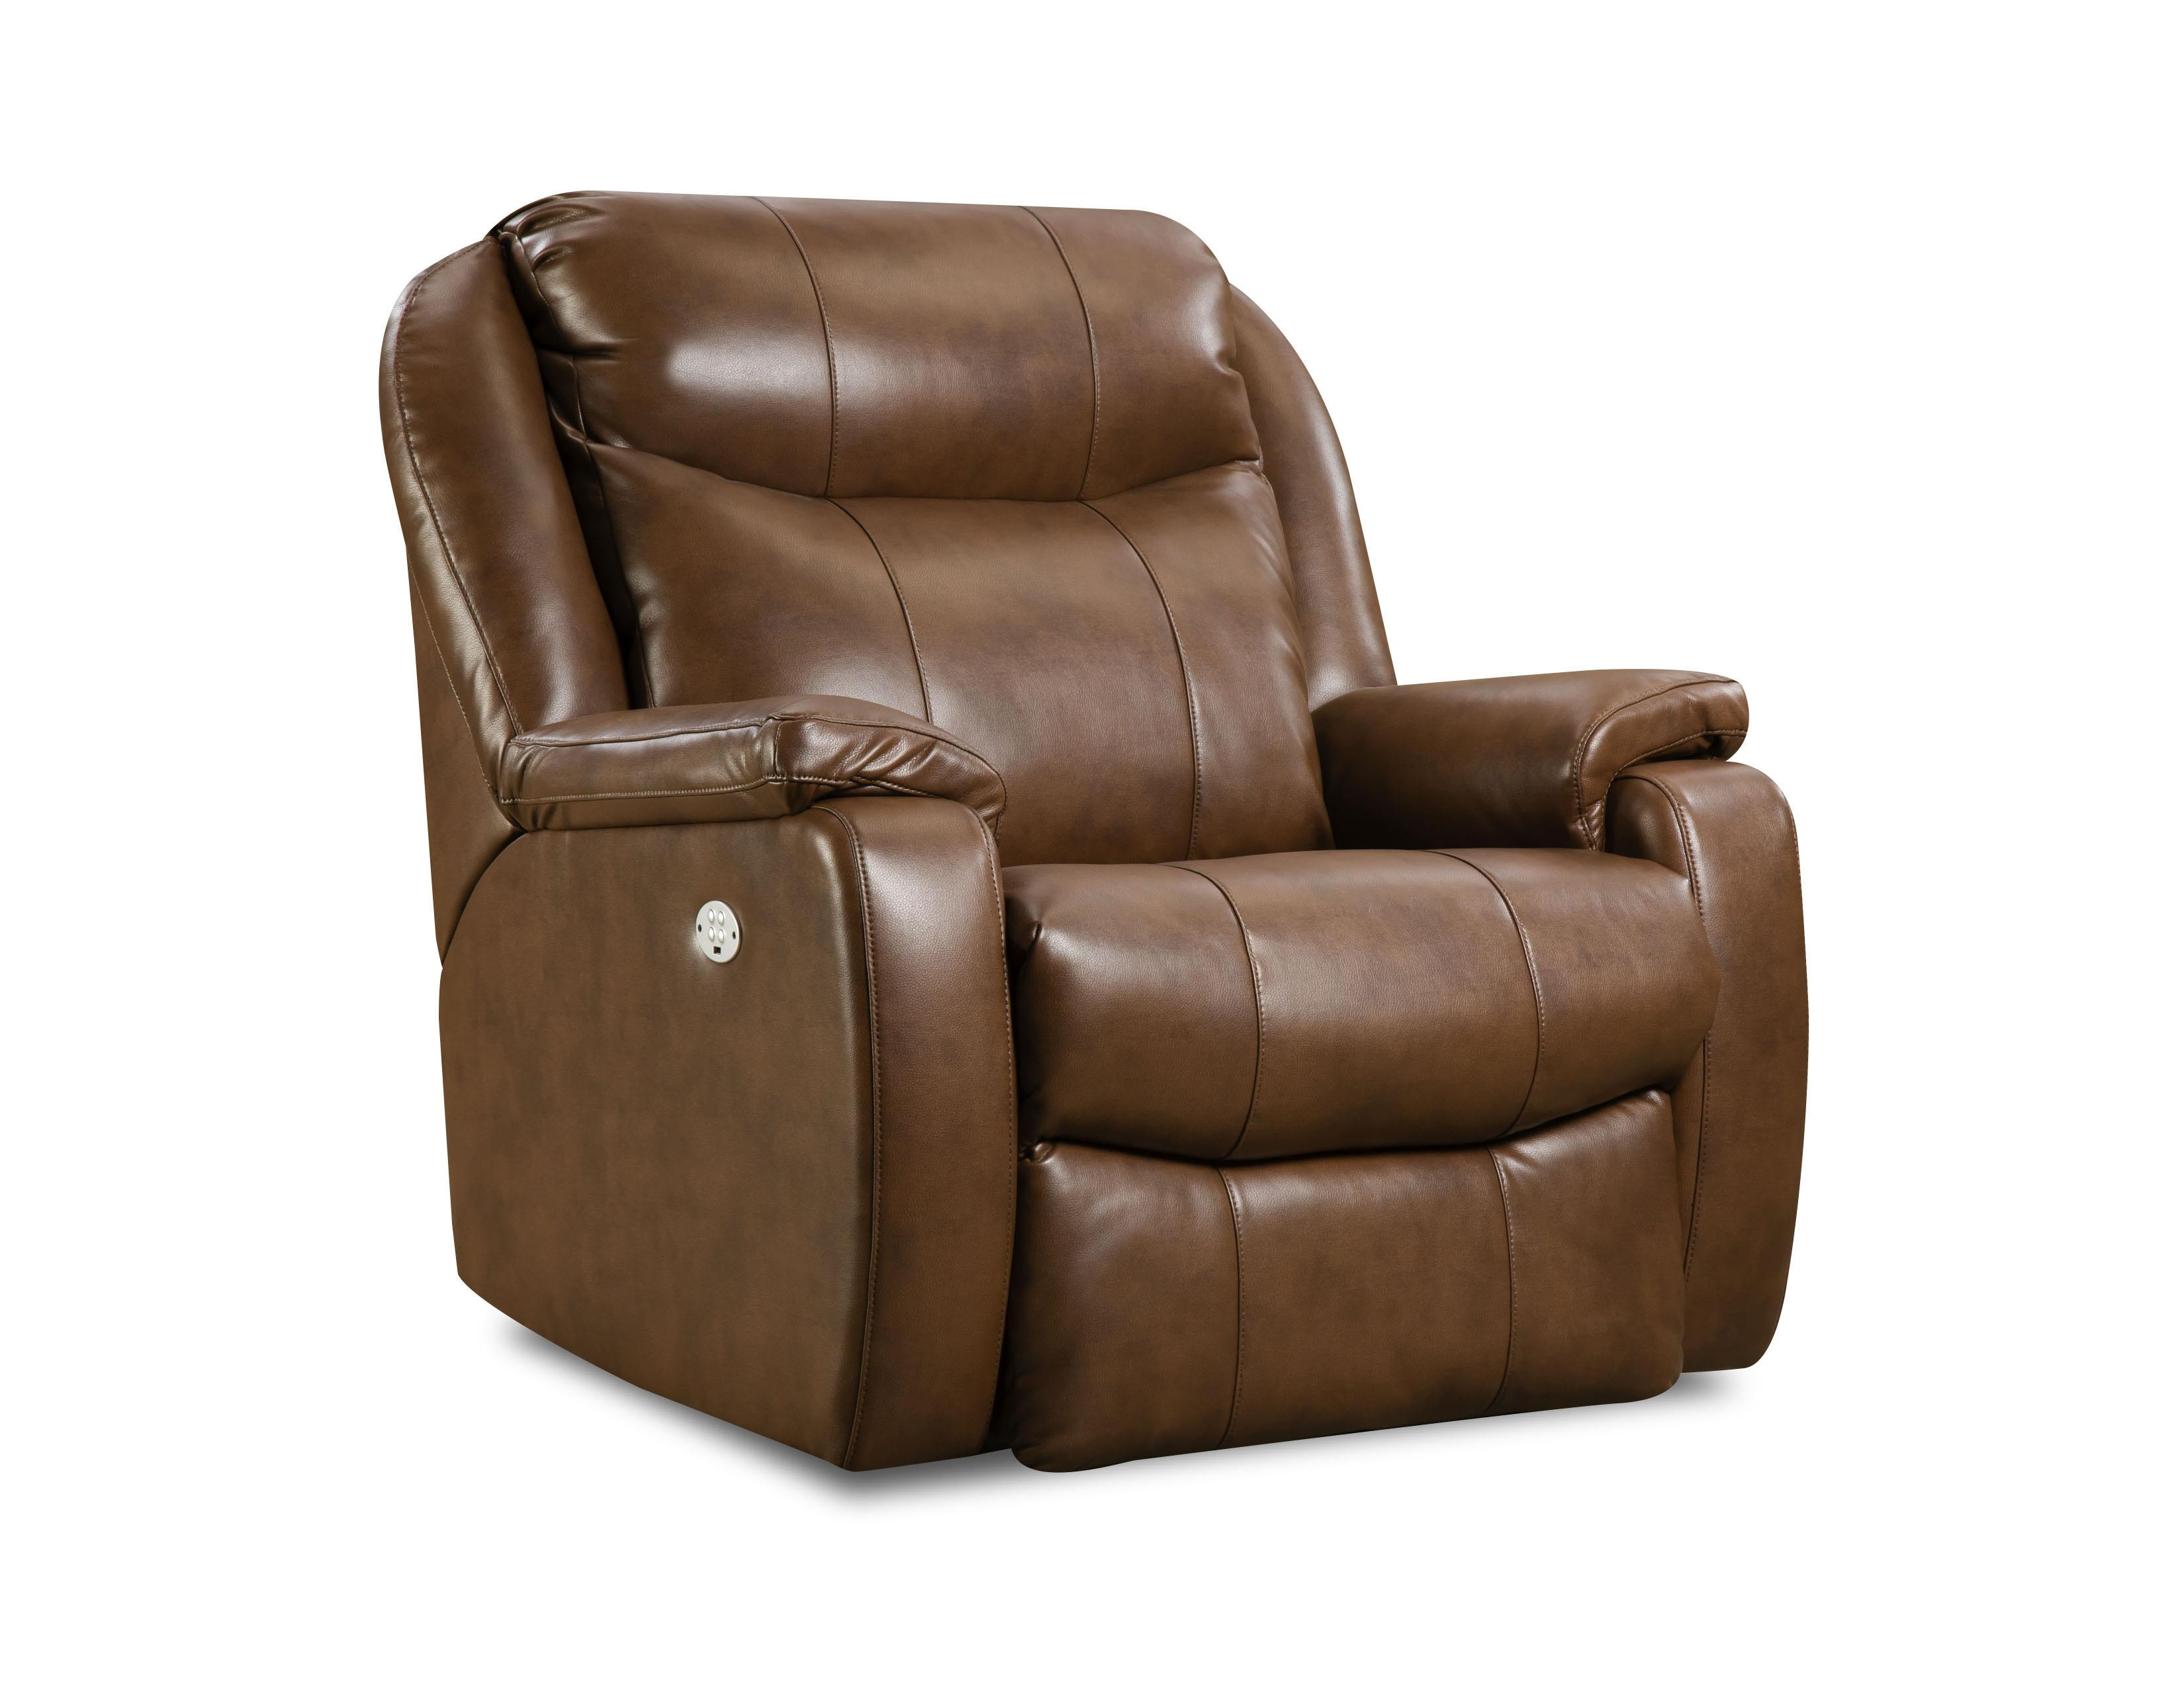 Southern Motion Hercules 0174074 Big Man S Power Recliner Becker Furniture Recliners